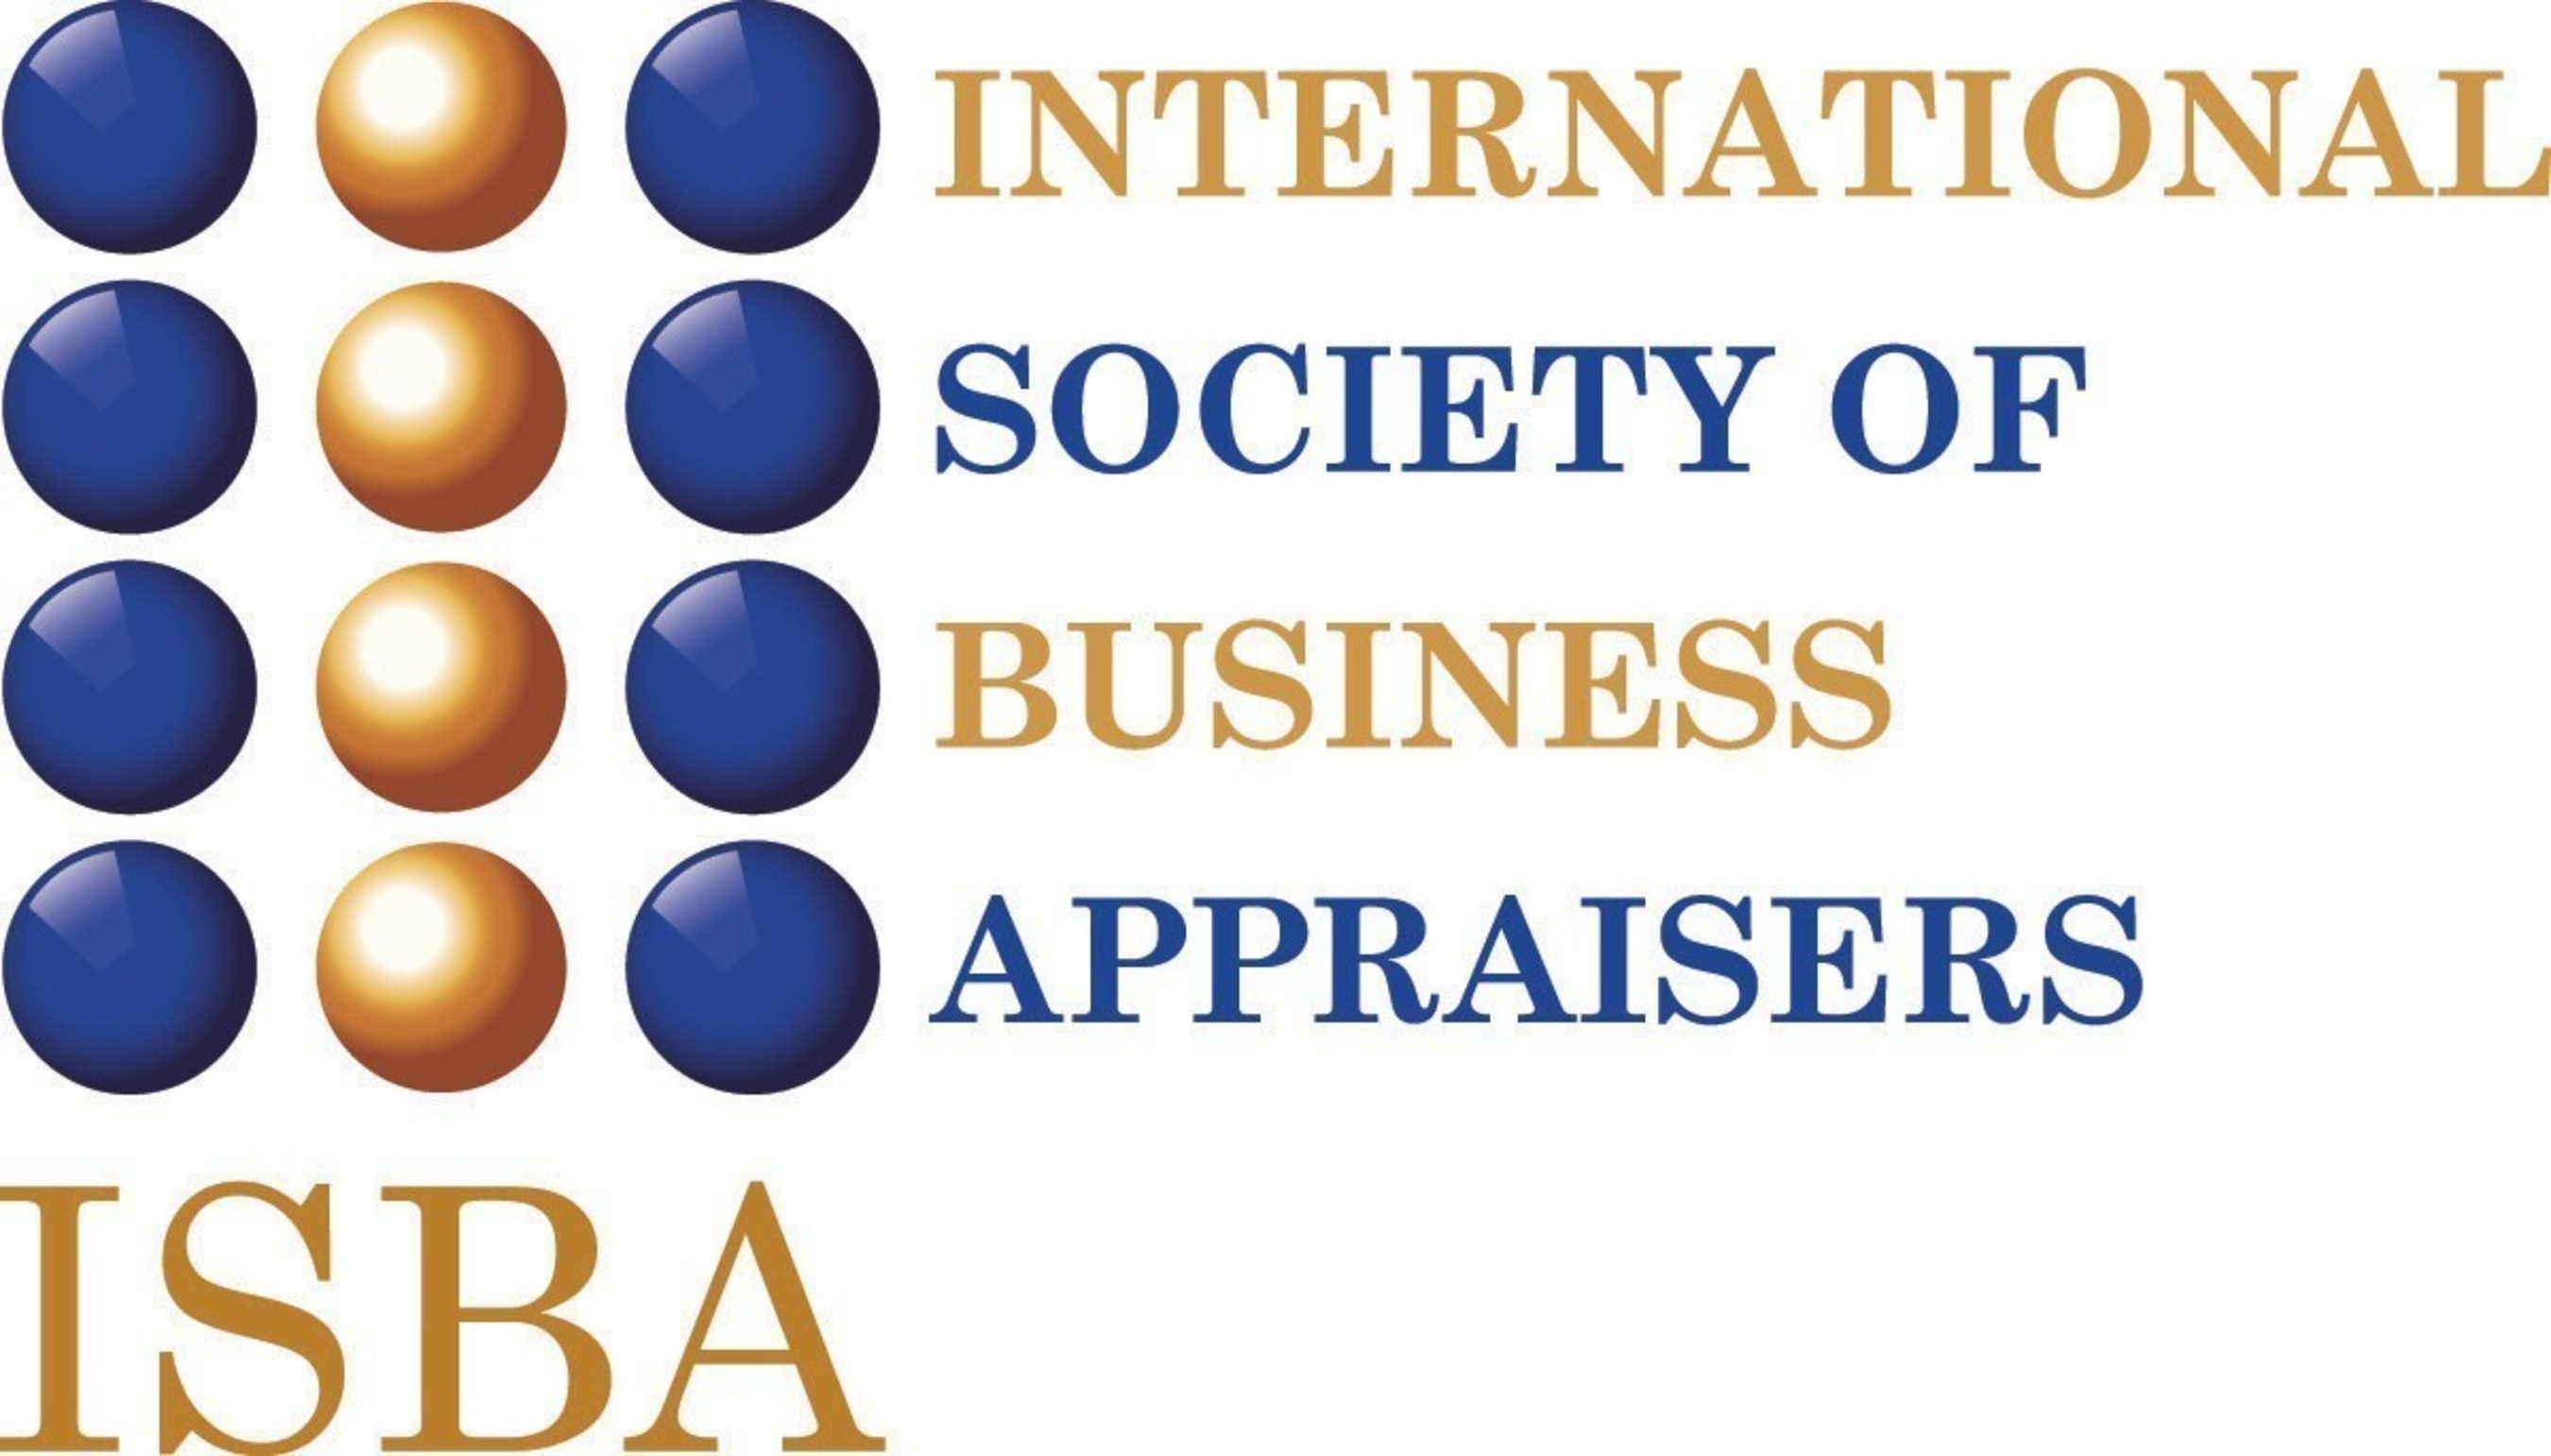 ISBA Delivered A Successful Groundbreaking and Revolutionary Business Valuation Course And Is